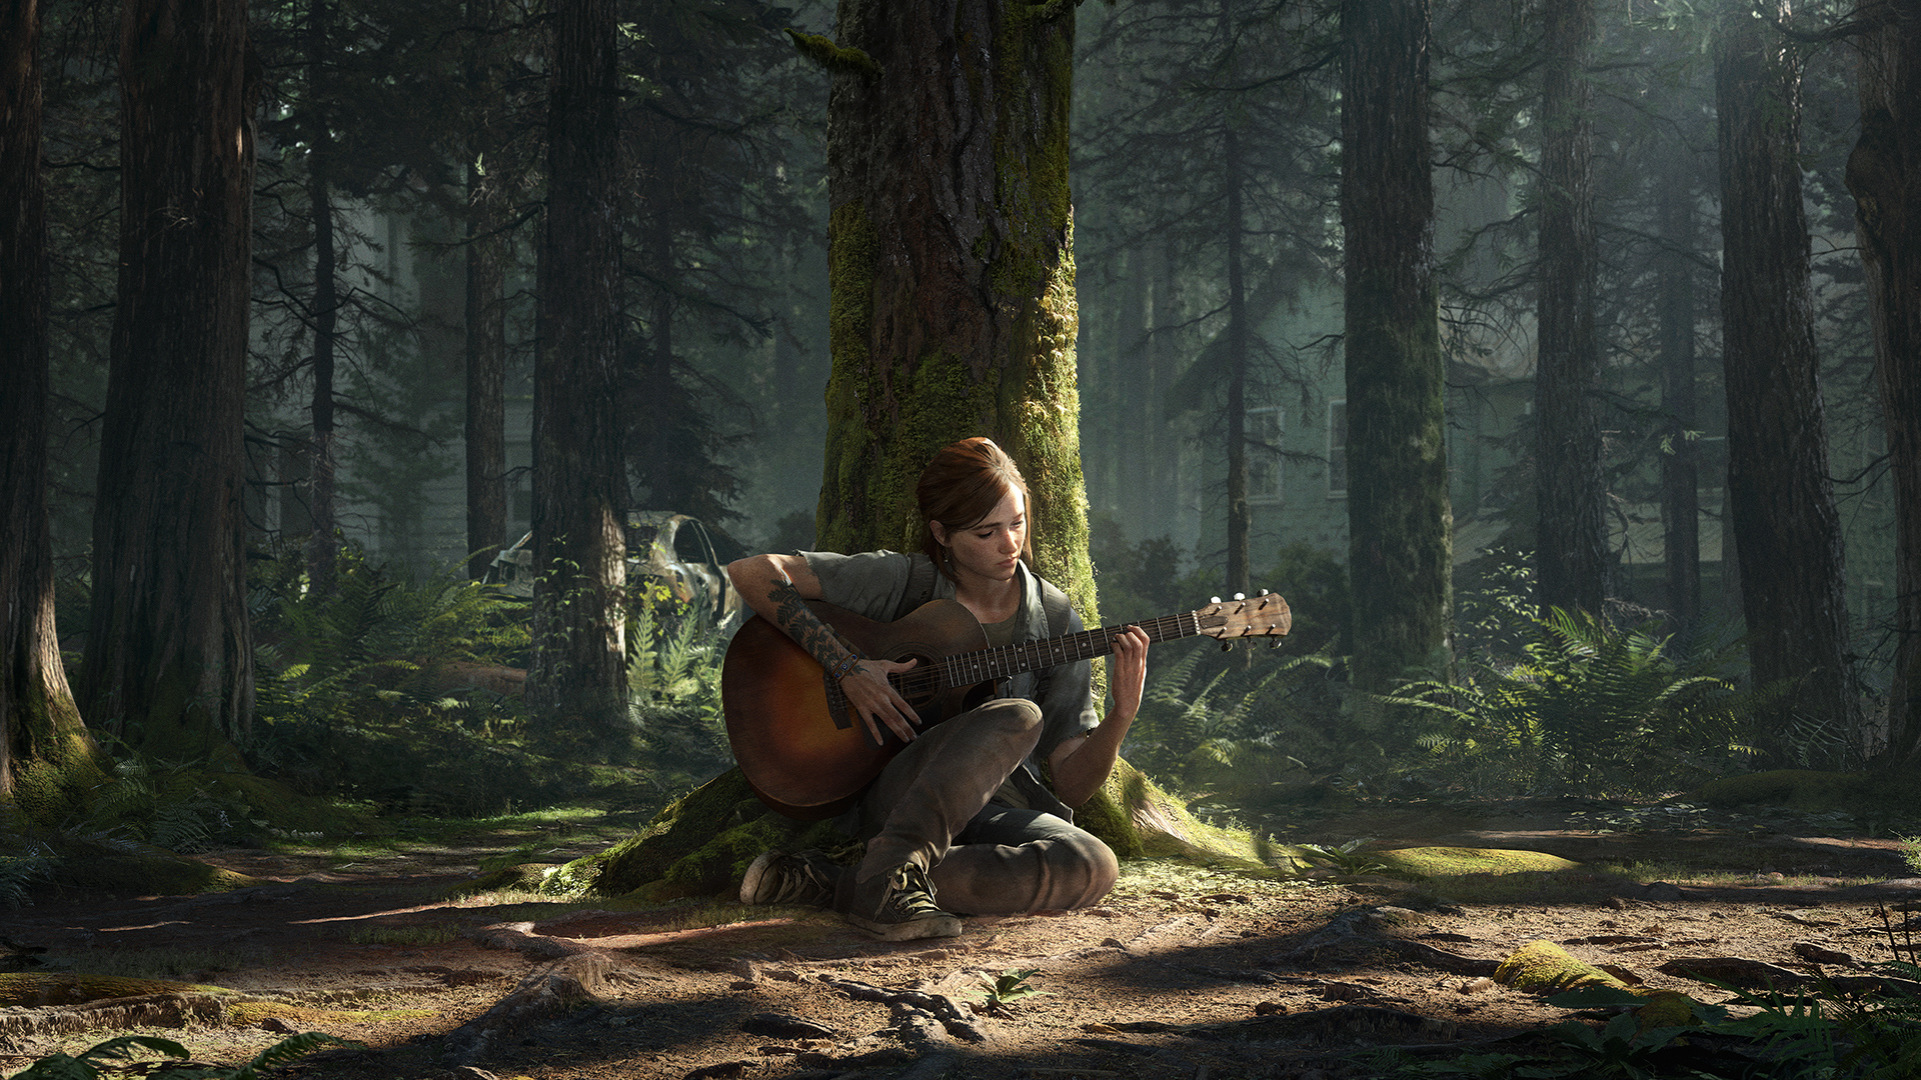 Naughty Dog is putting finishing touches to The Last of Us Part II